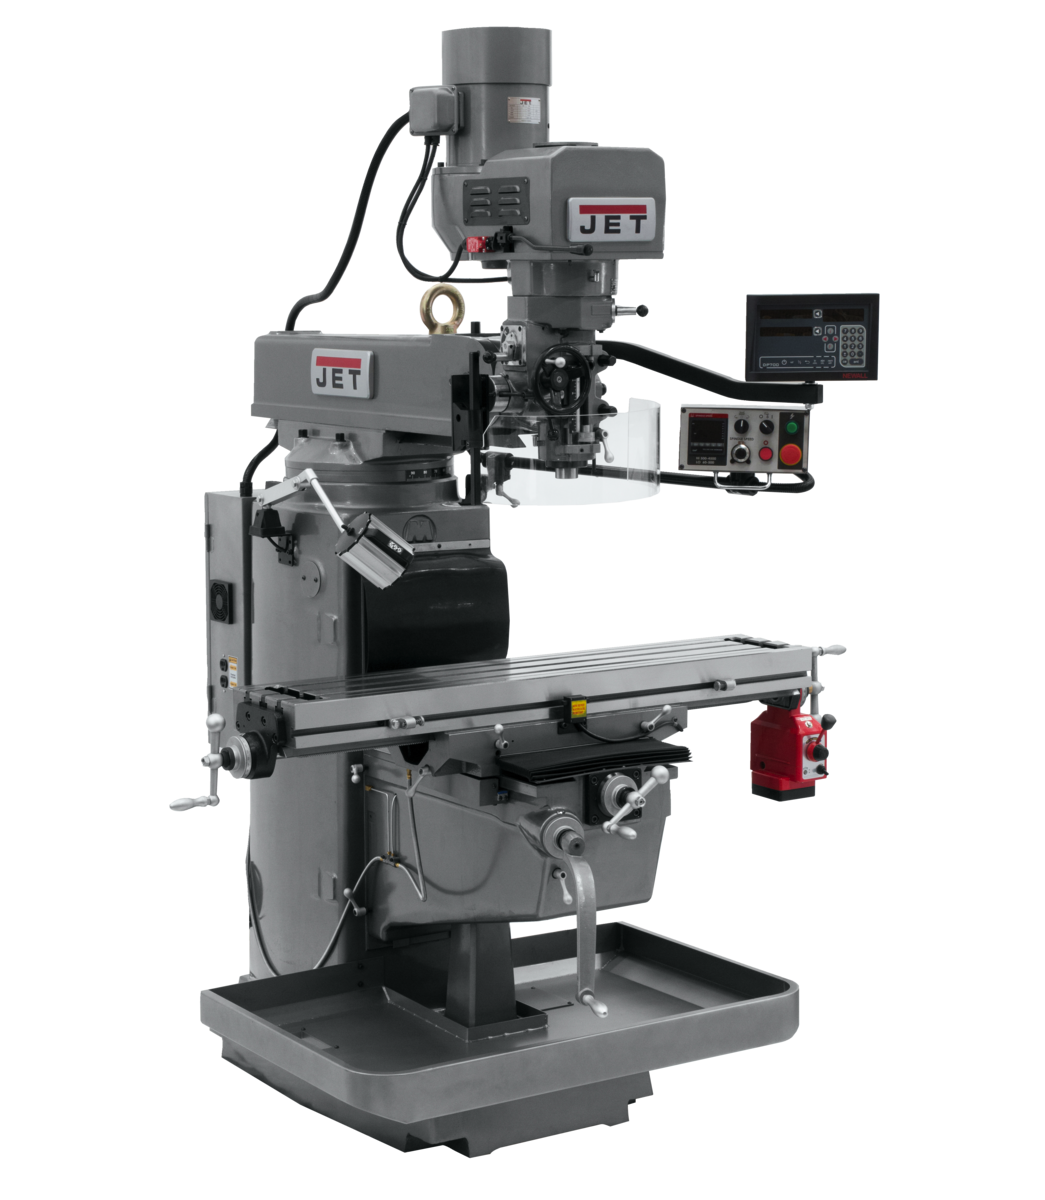 JTM-1050EVS2/230 Mill With 3-Axis Newall DP700 DRO (Knee) With X-Axis Powerfeed